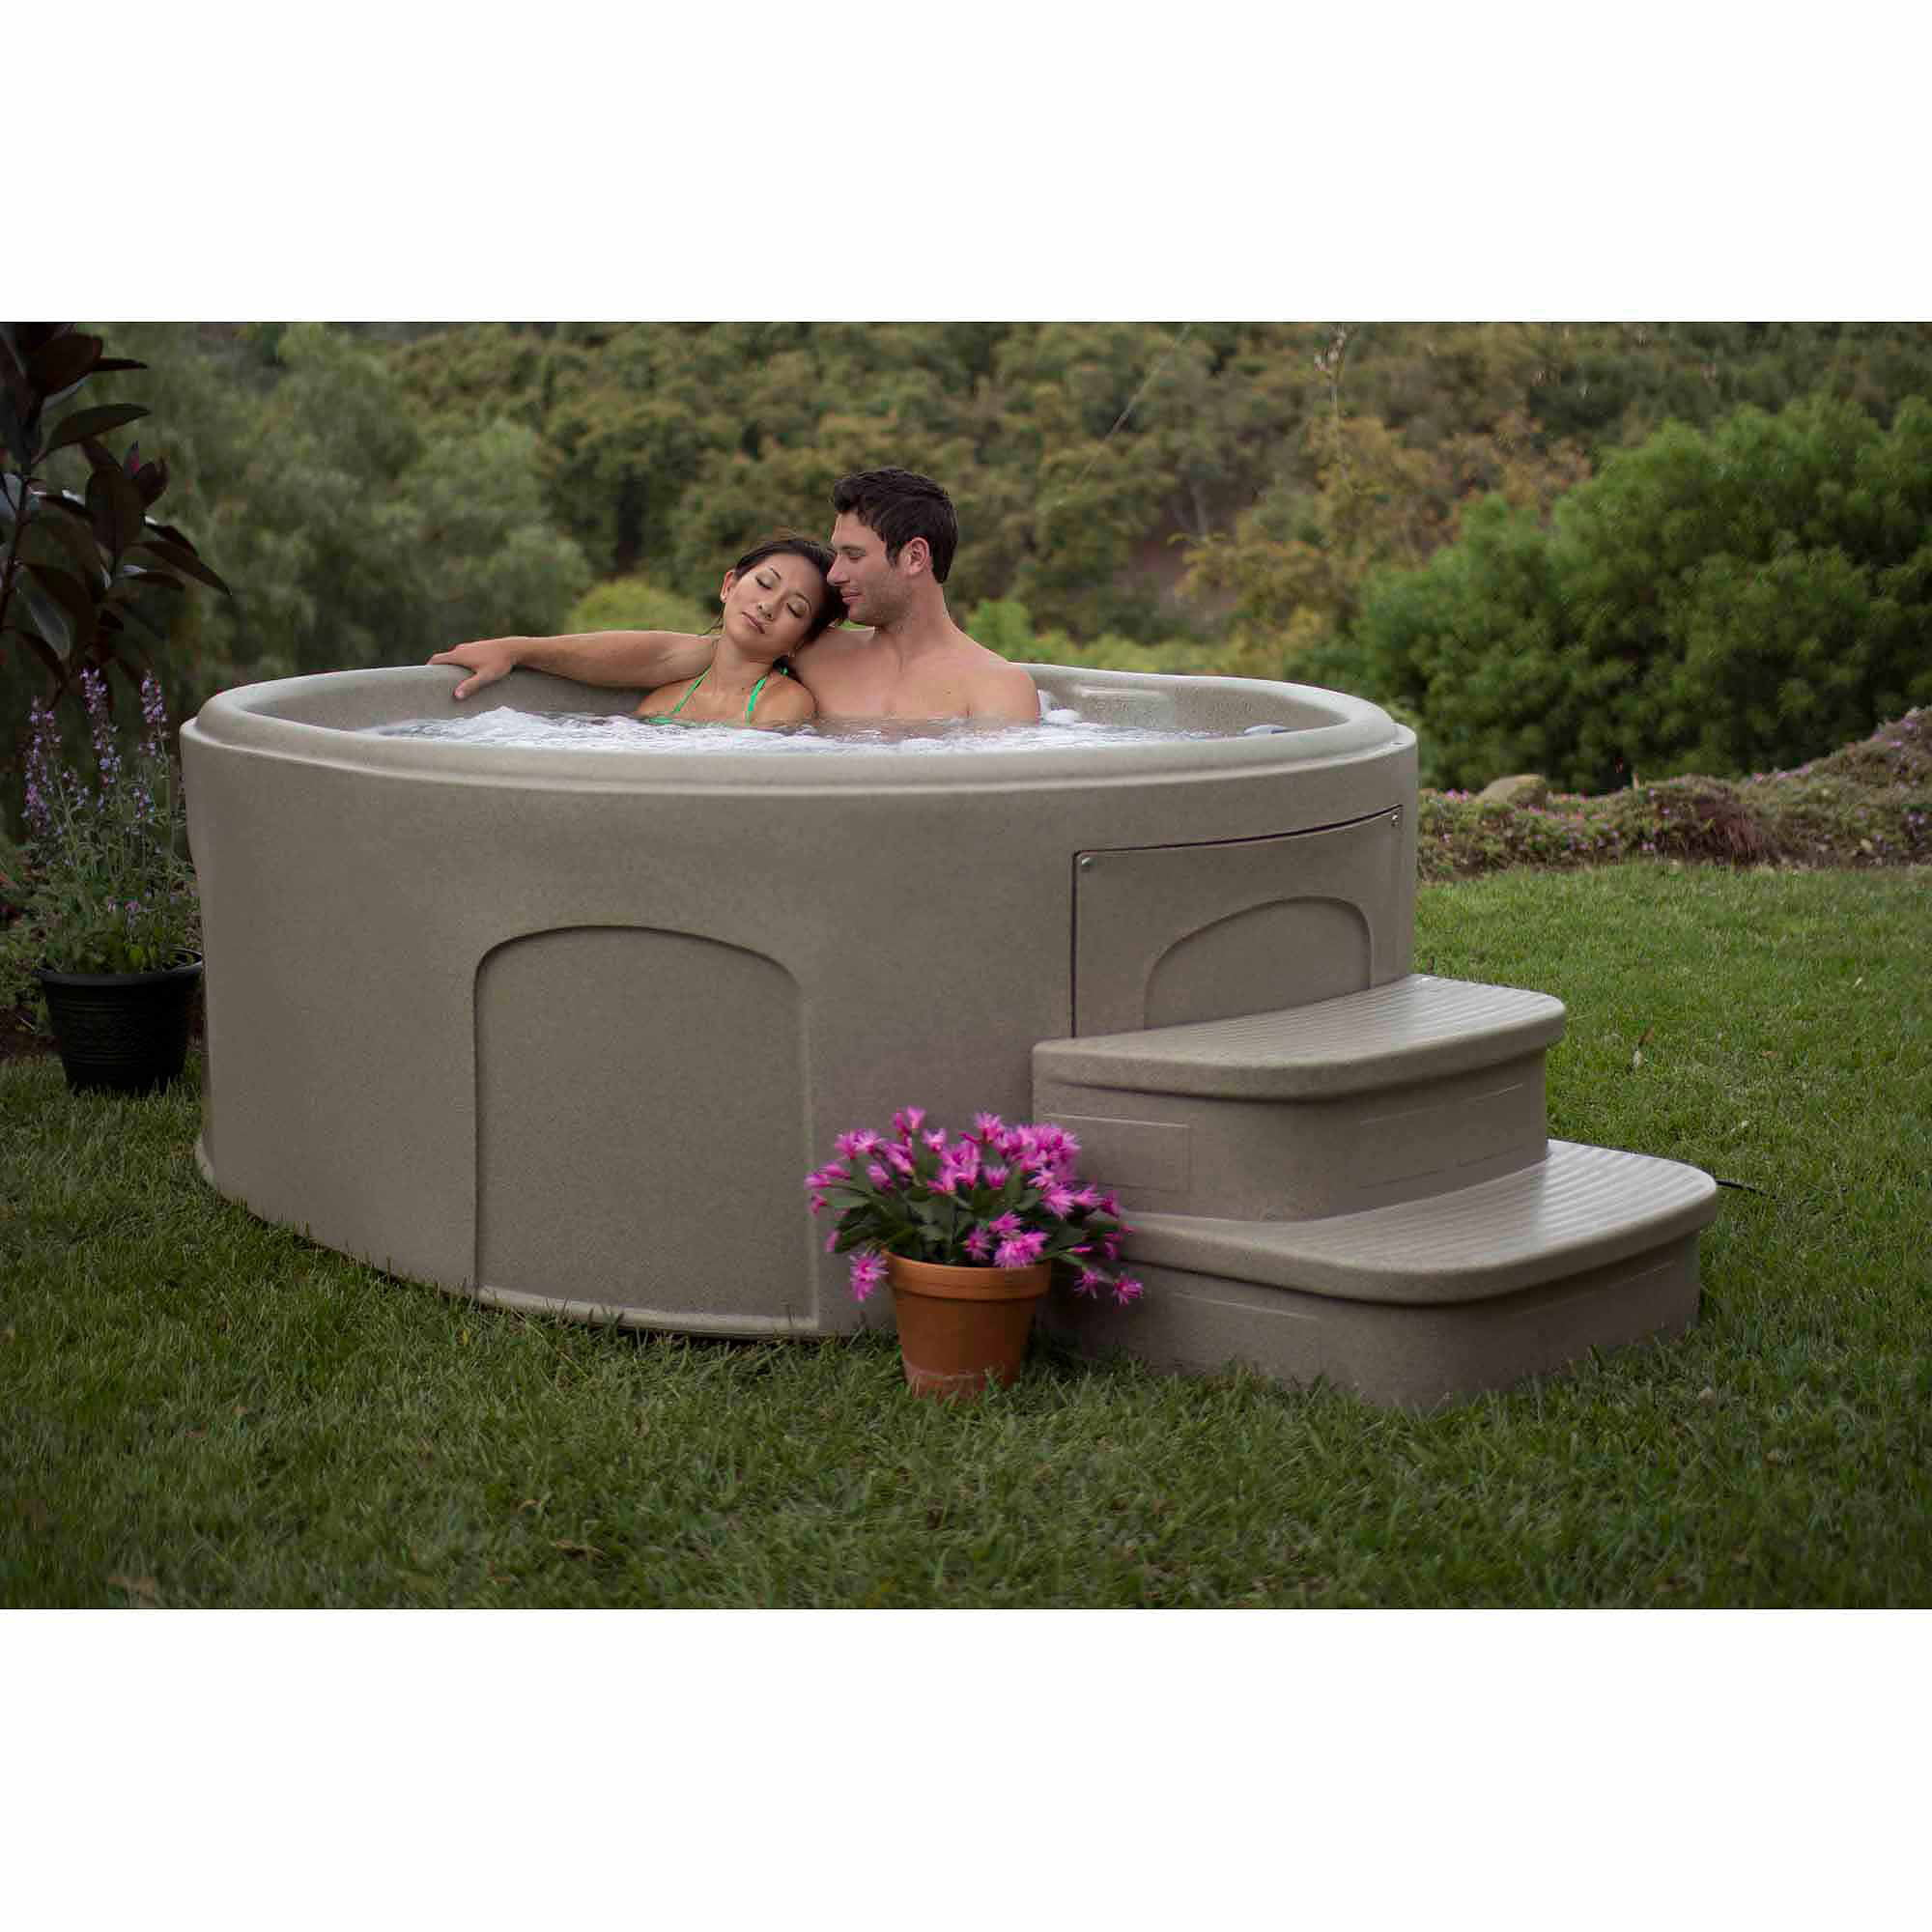 hot lawn spaberry tubs ca amazon portable spa dp tub patio person pl garden strawberry in